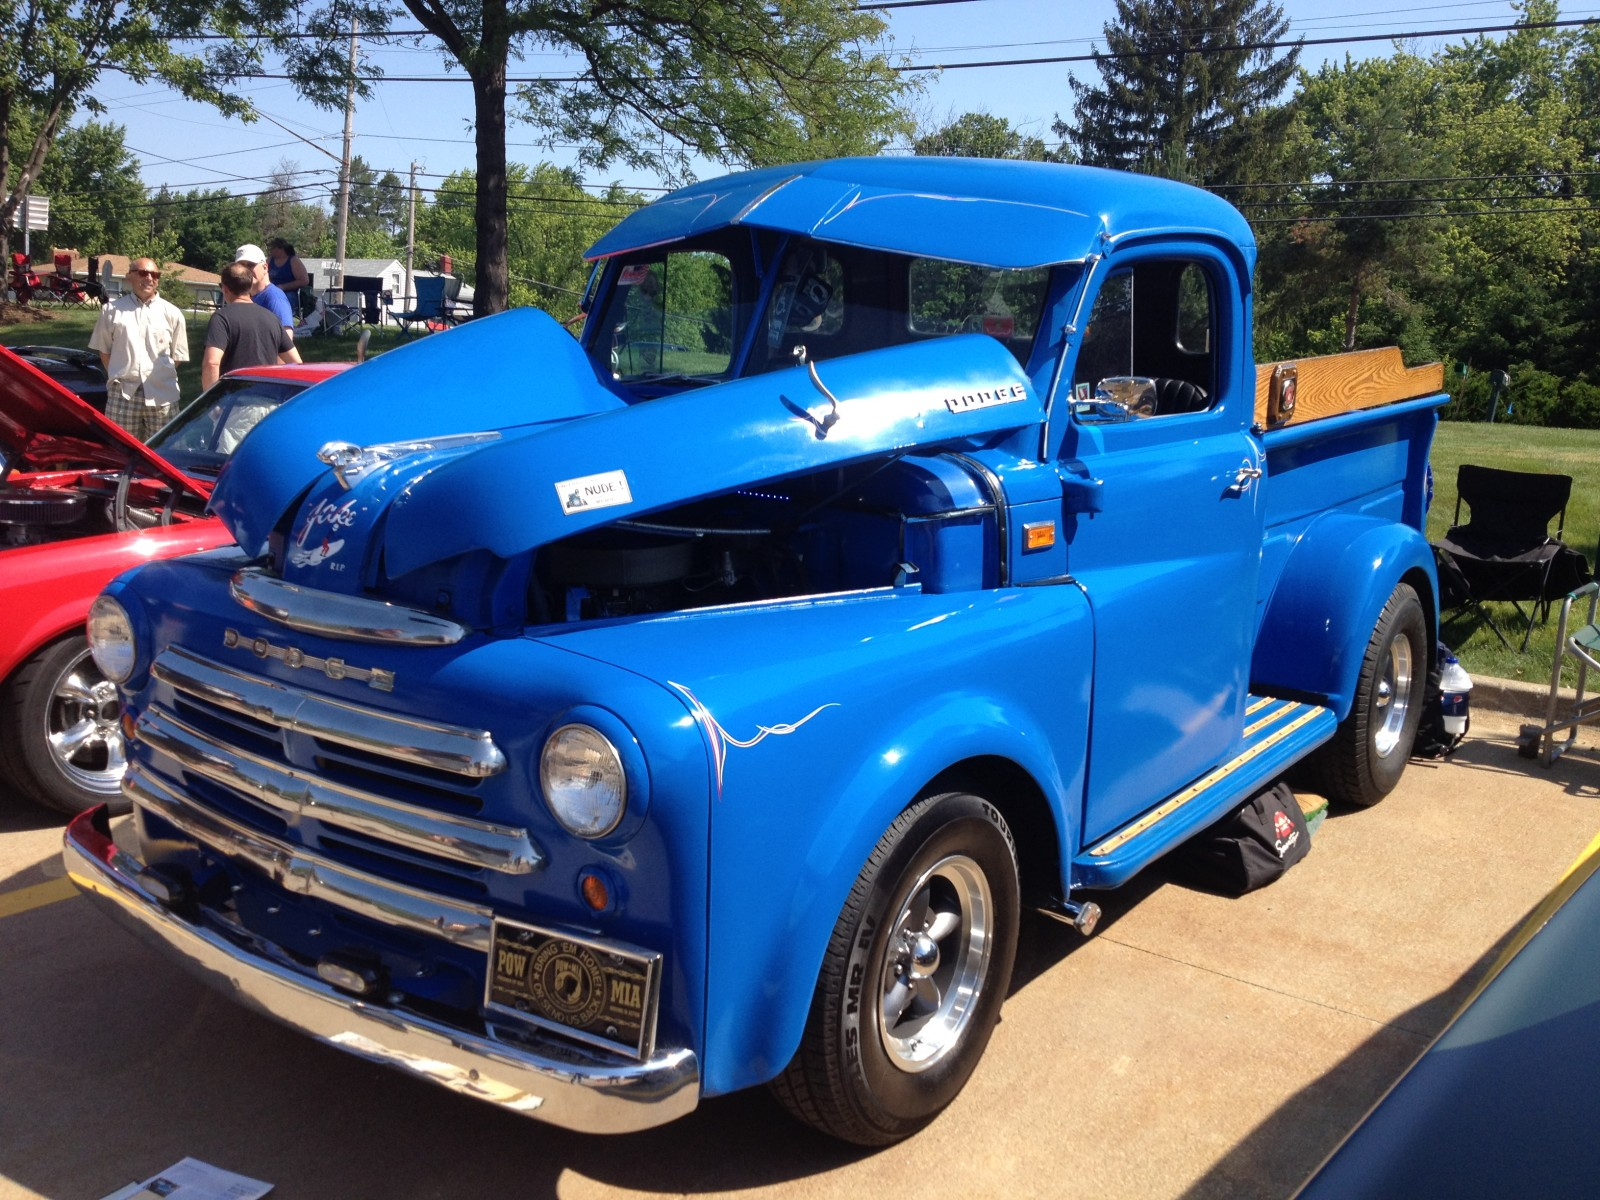 When Don Met Vito—A Super Summit Story Featuring a 1950 Dodge Truck